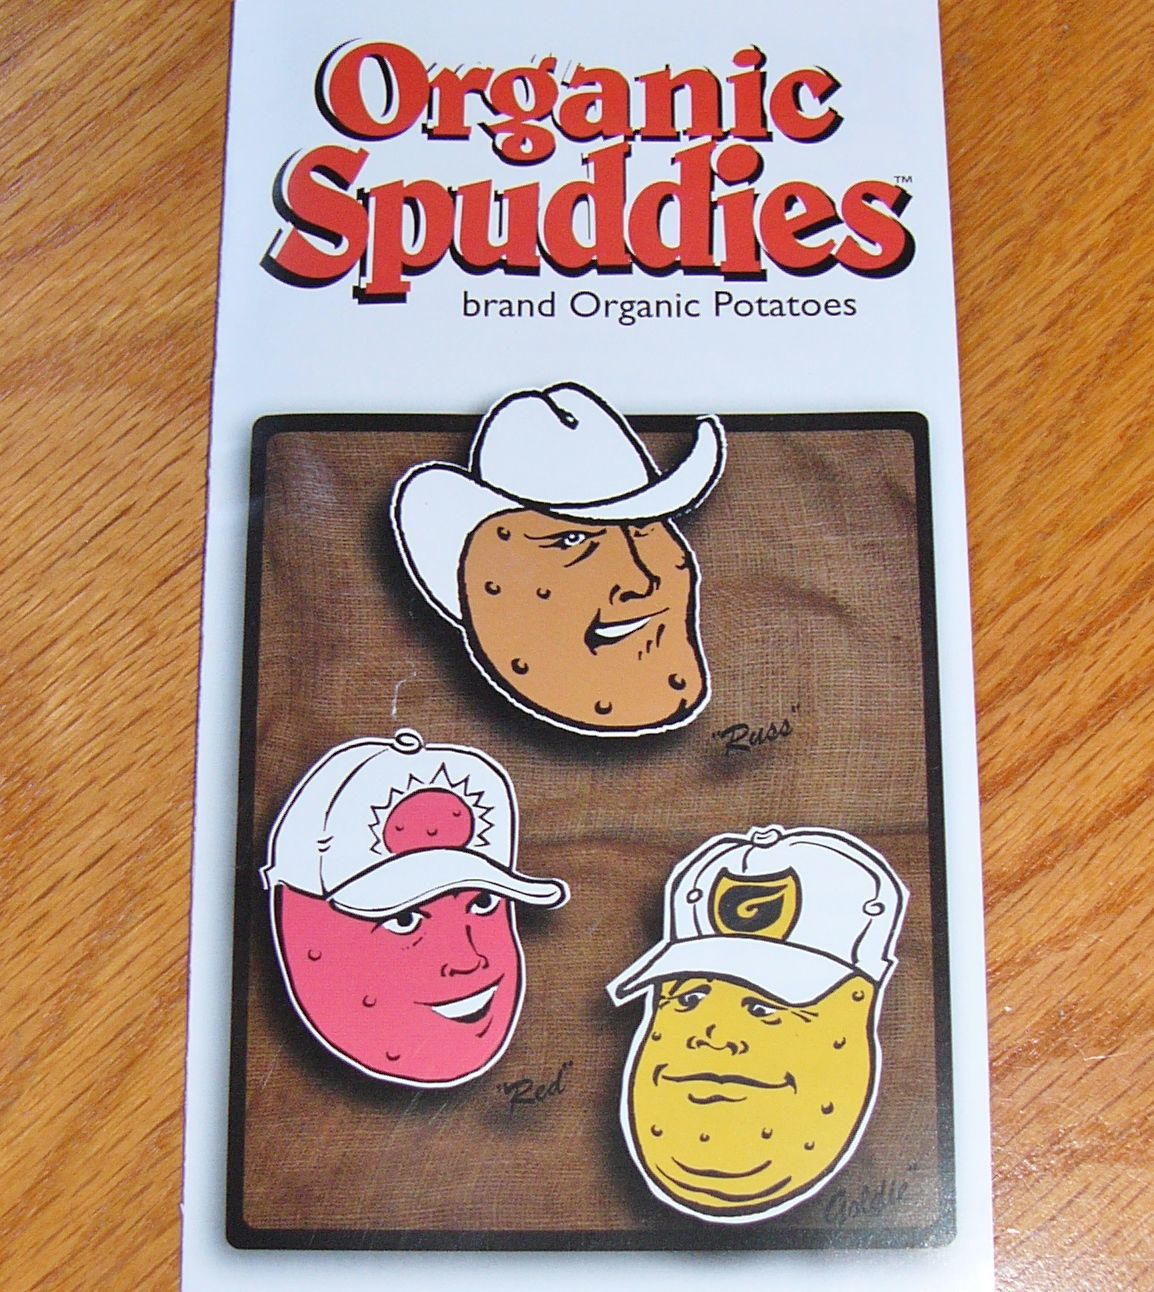 Organic Spuddies feature farmers' faces